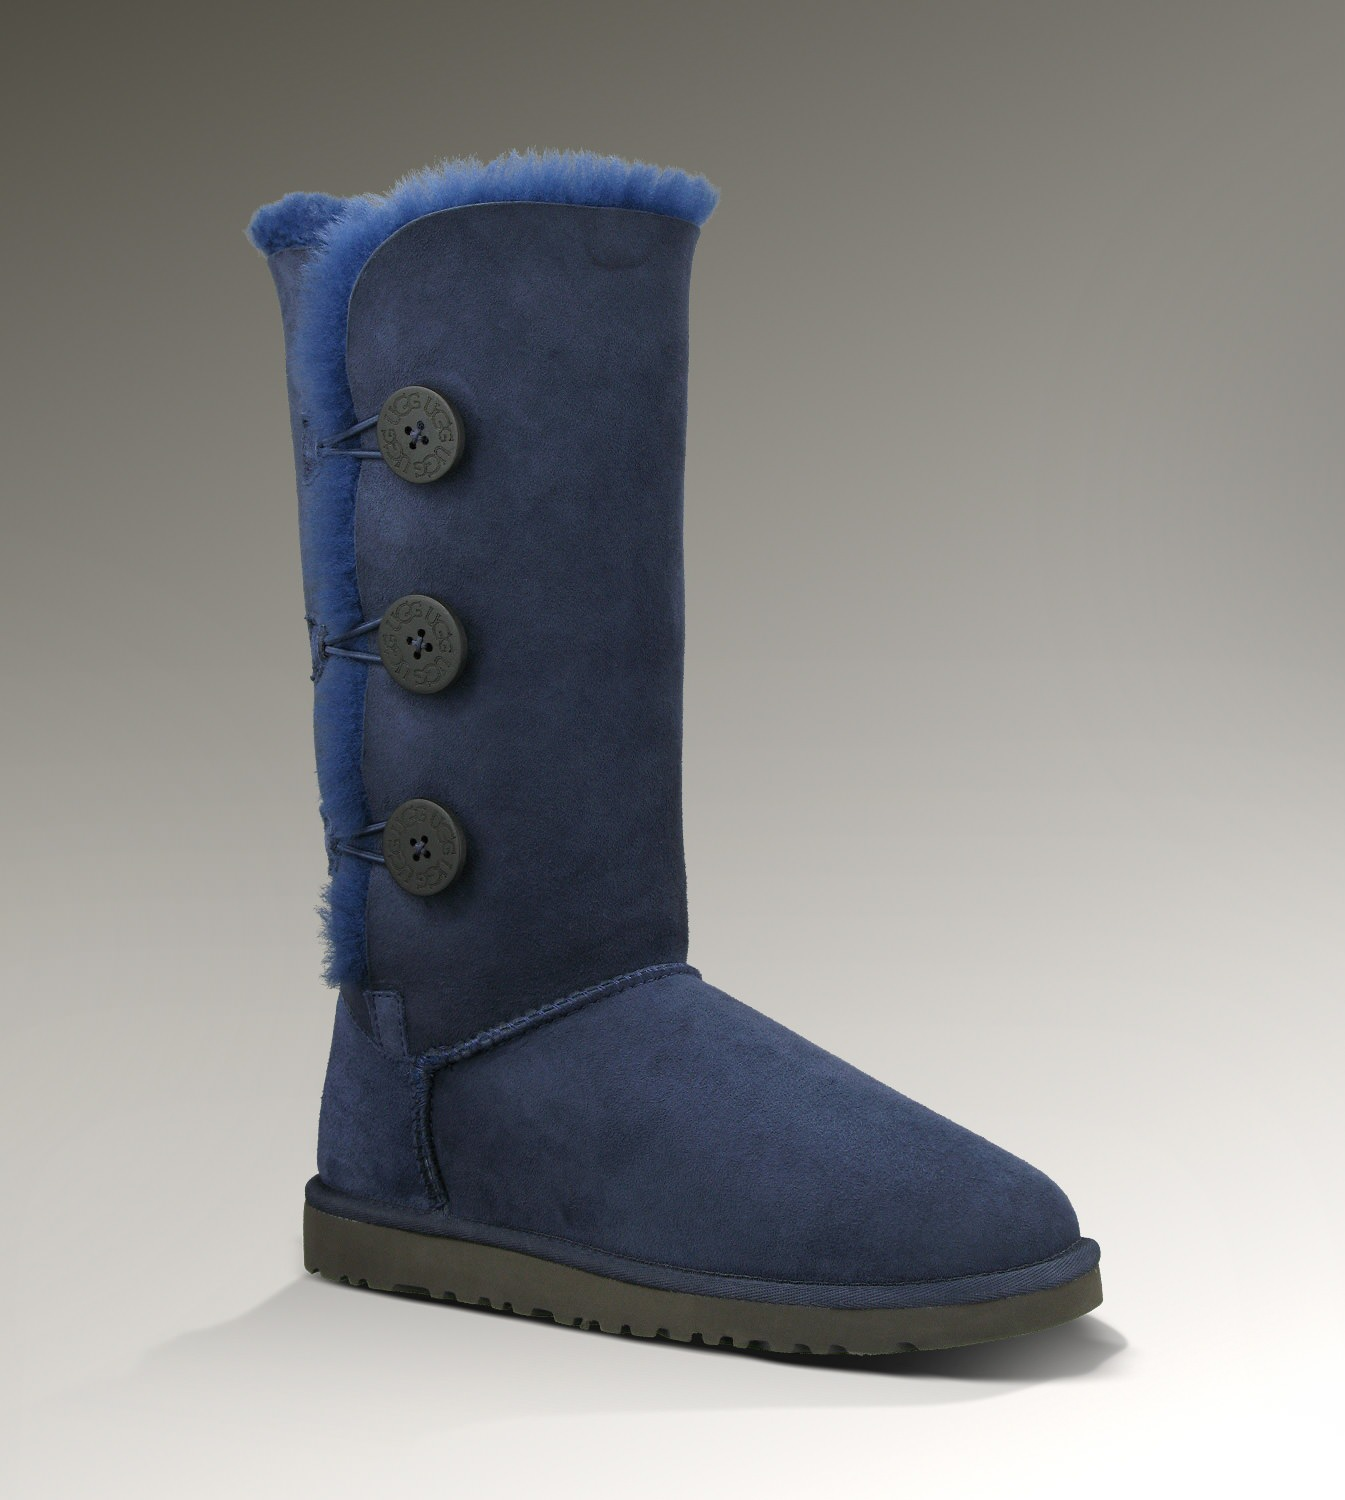 UGG Bailey Button Triplet 1873 Navy Boots